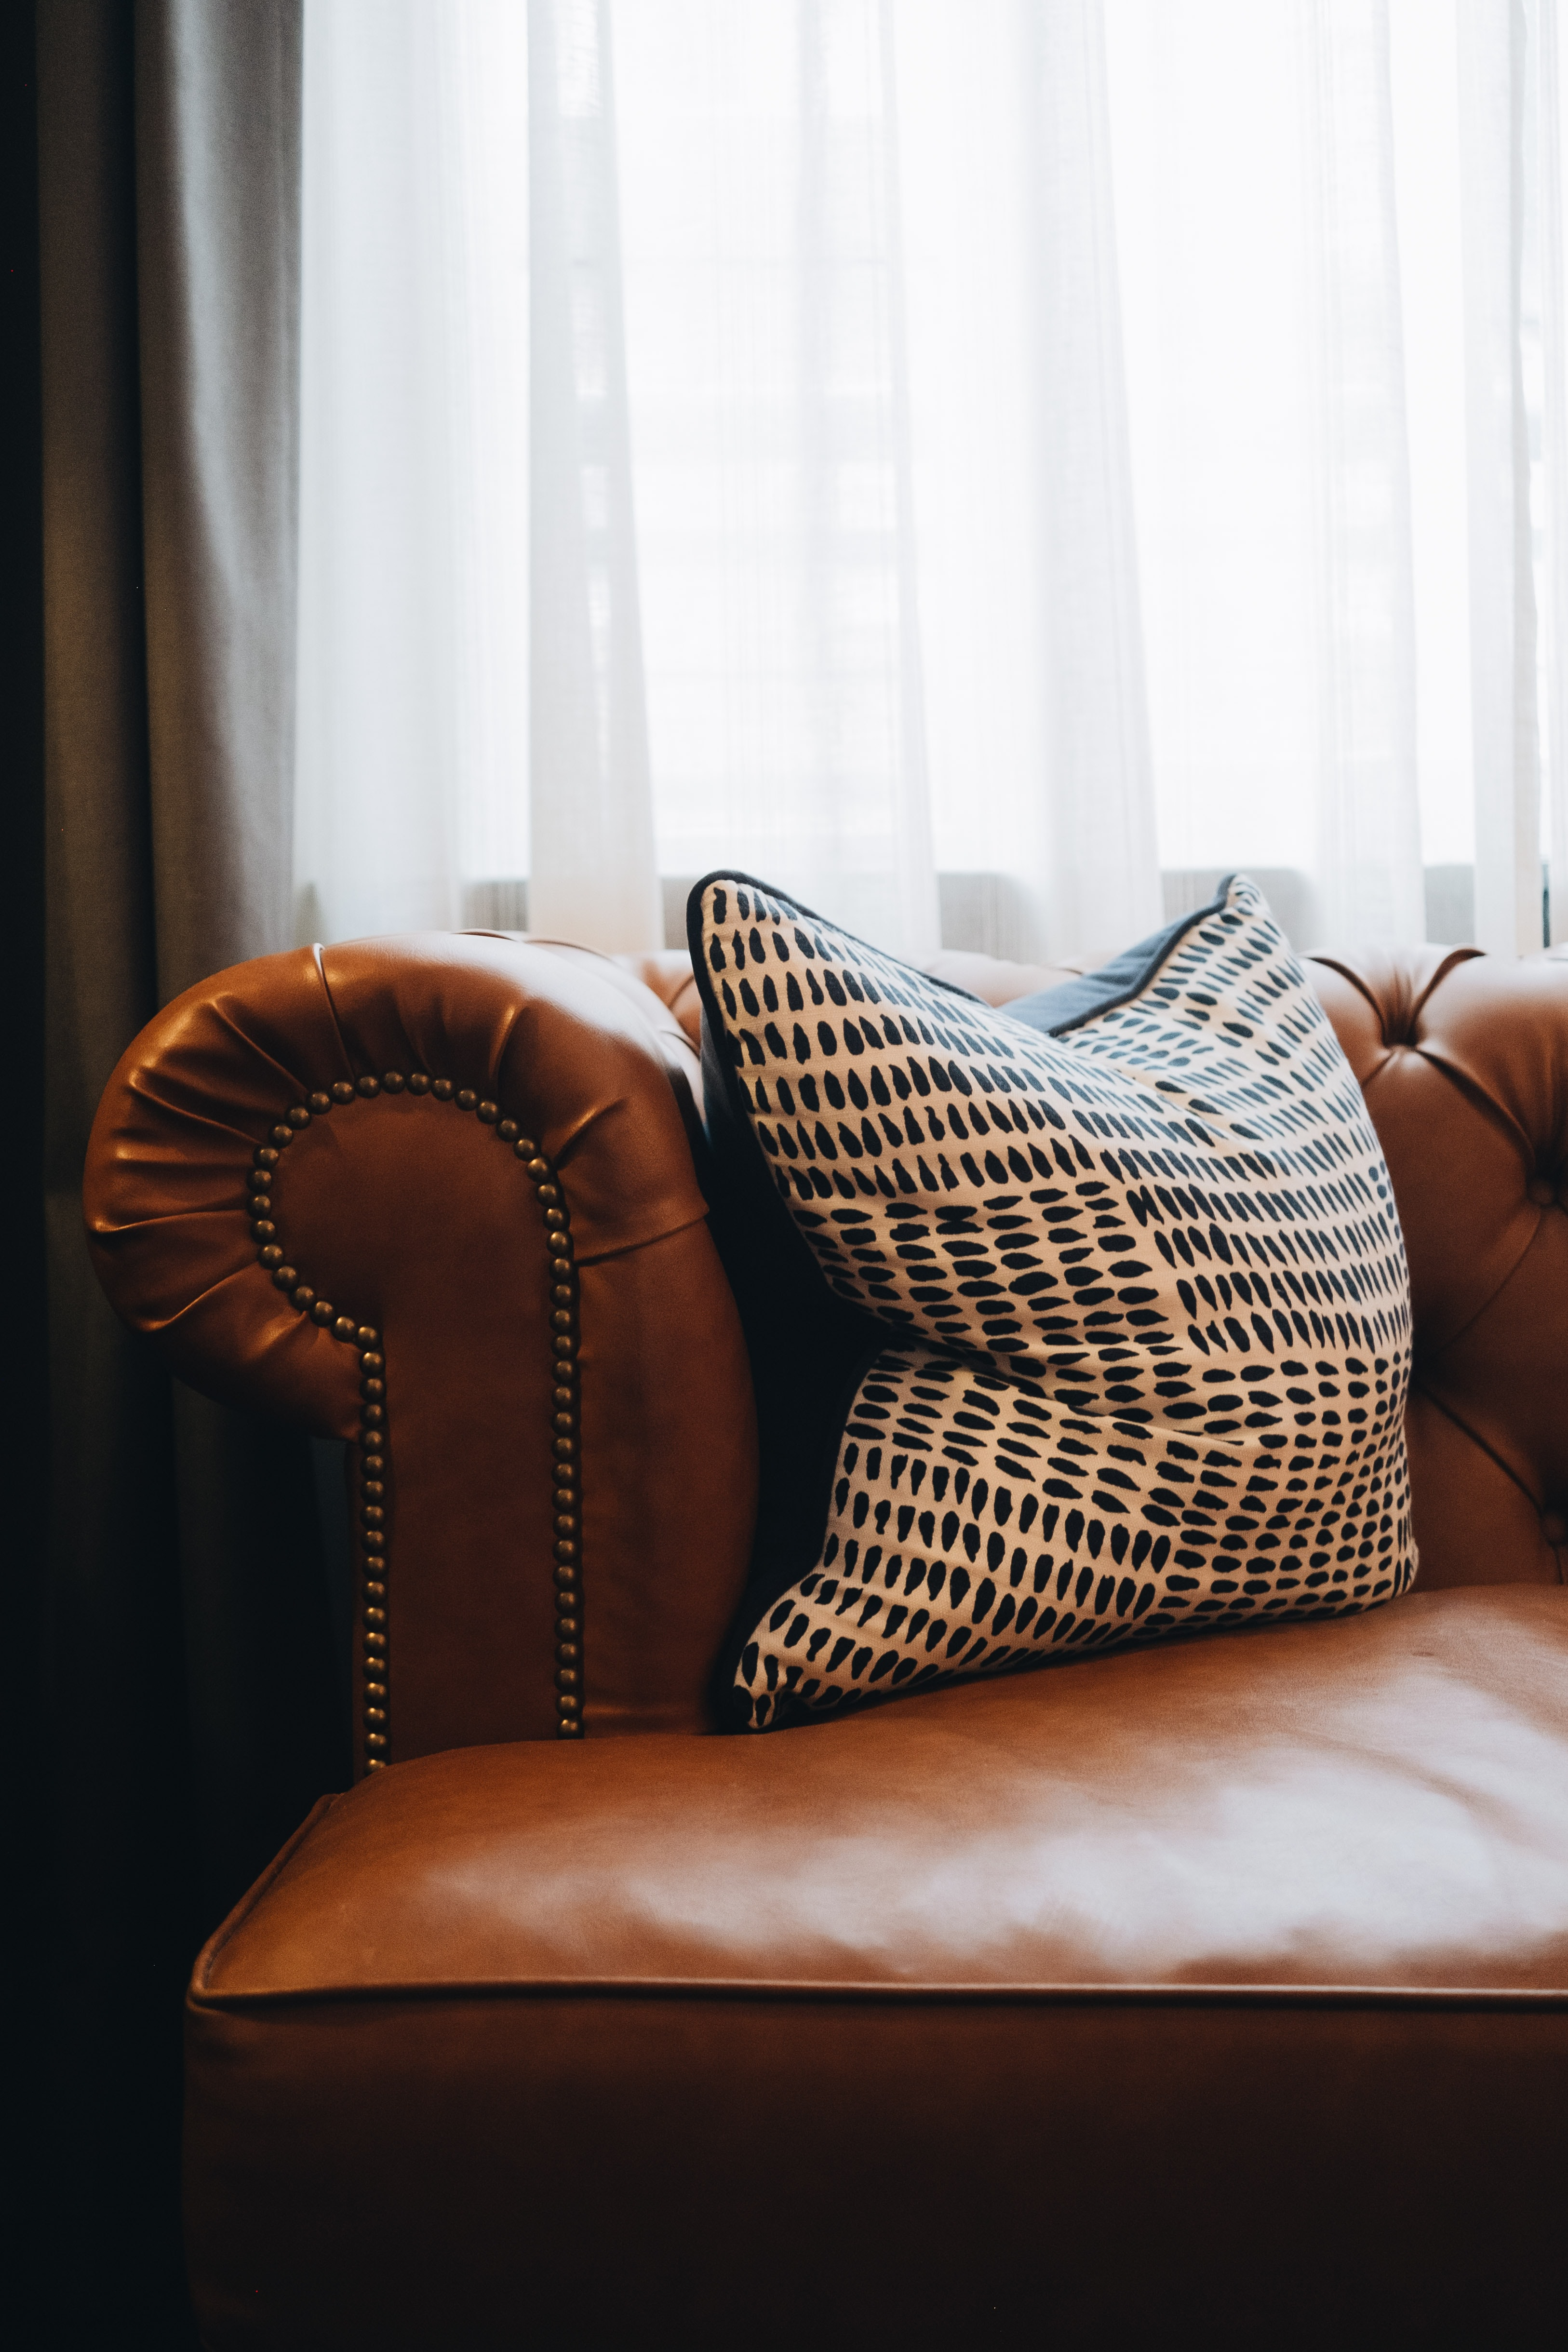 Brown And White Throw Pillow On Brown Leather Couch Photo Free Furniture Image On Unsplash